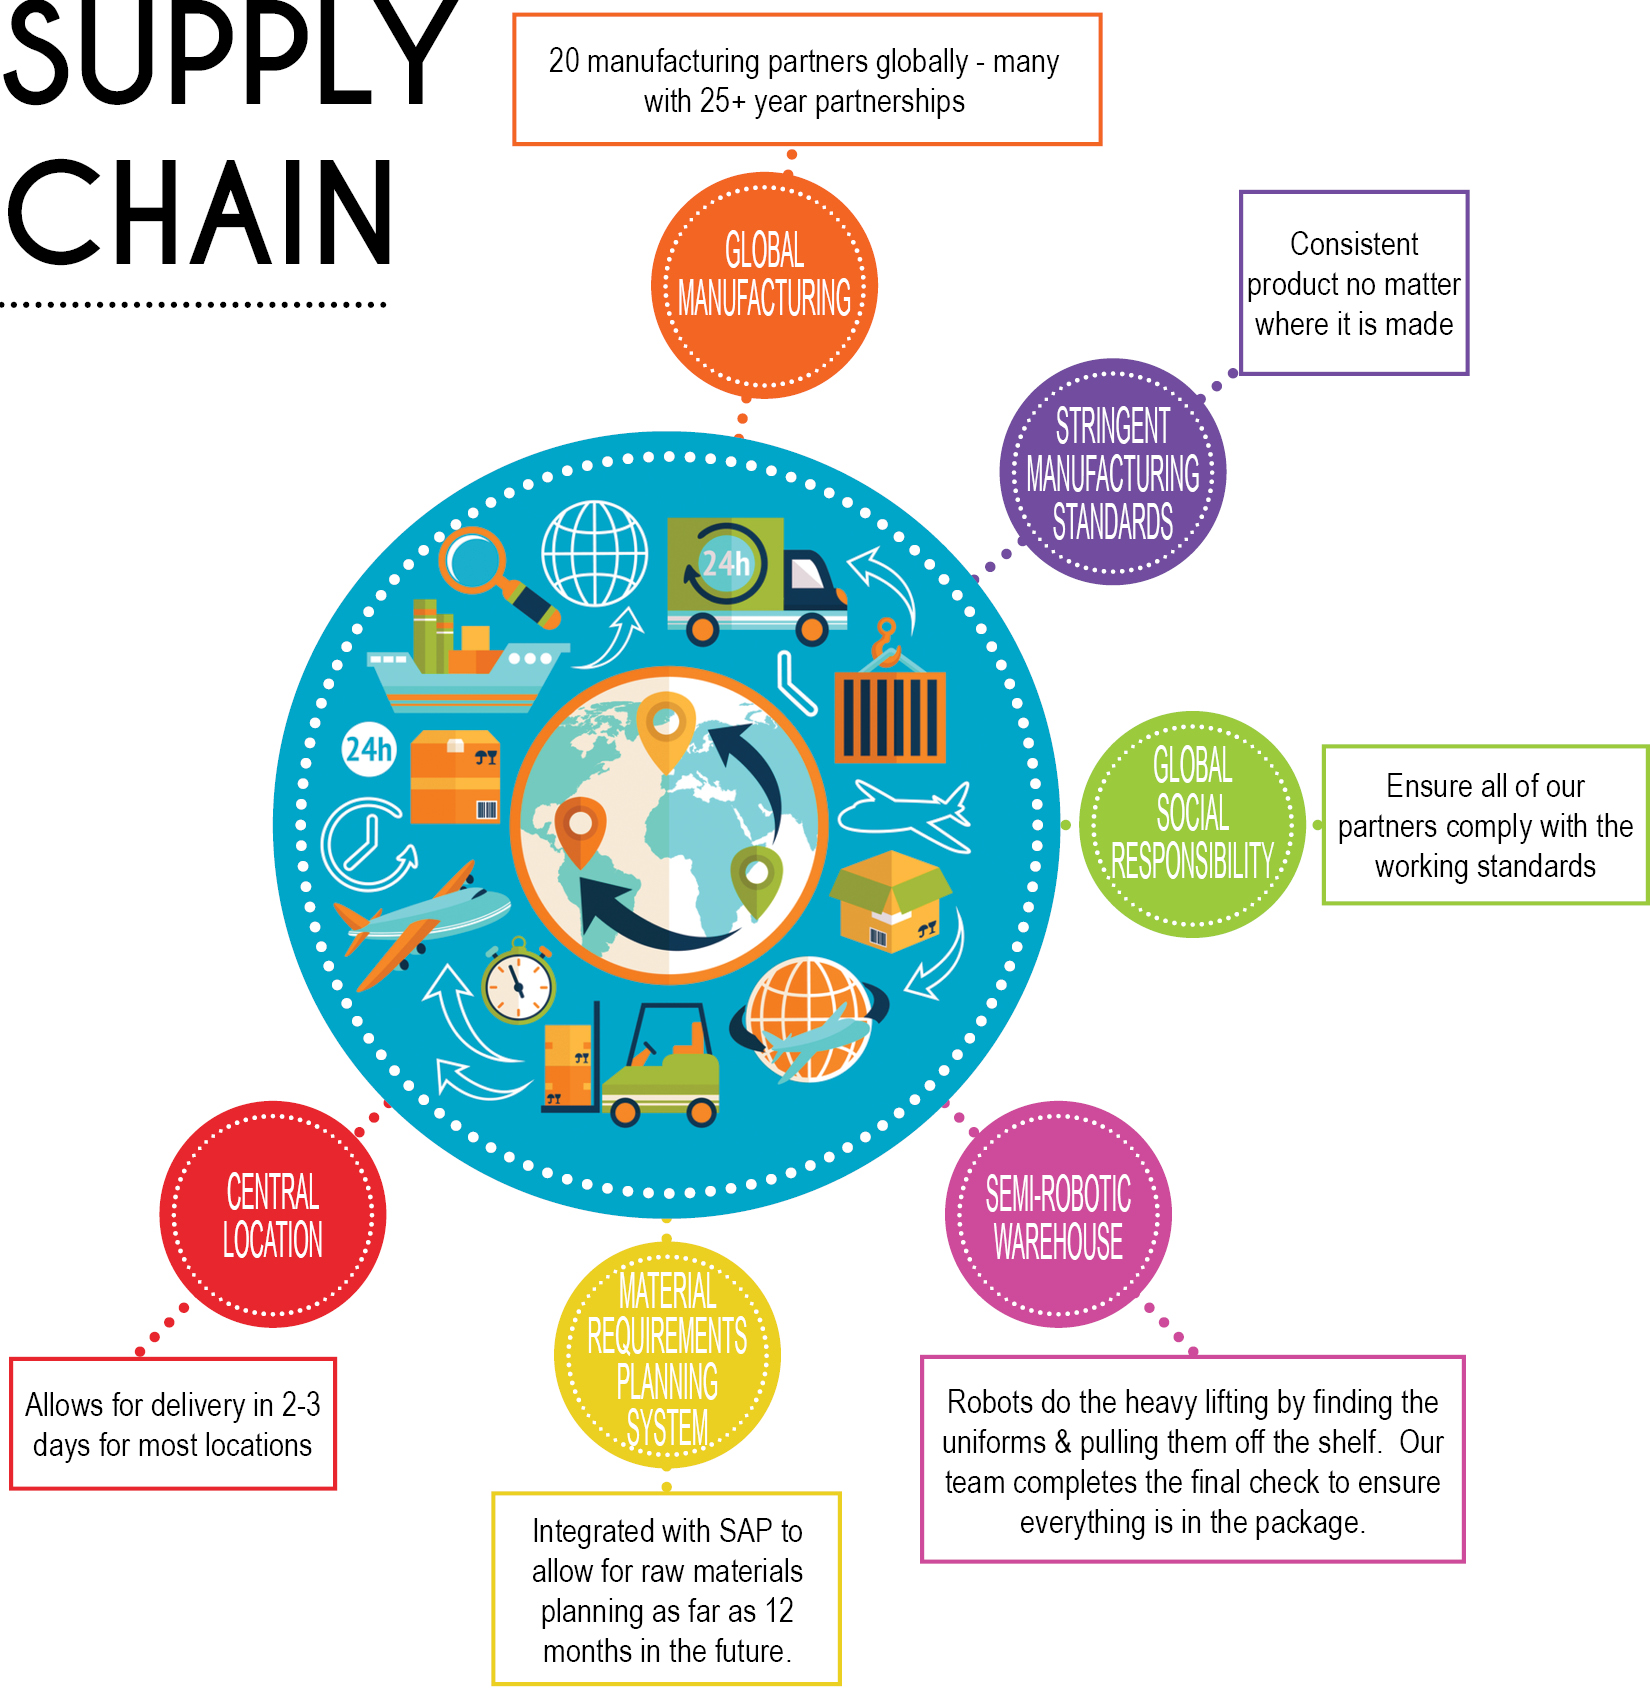 Supply Chain Management by Fashion Seal Healthcare